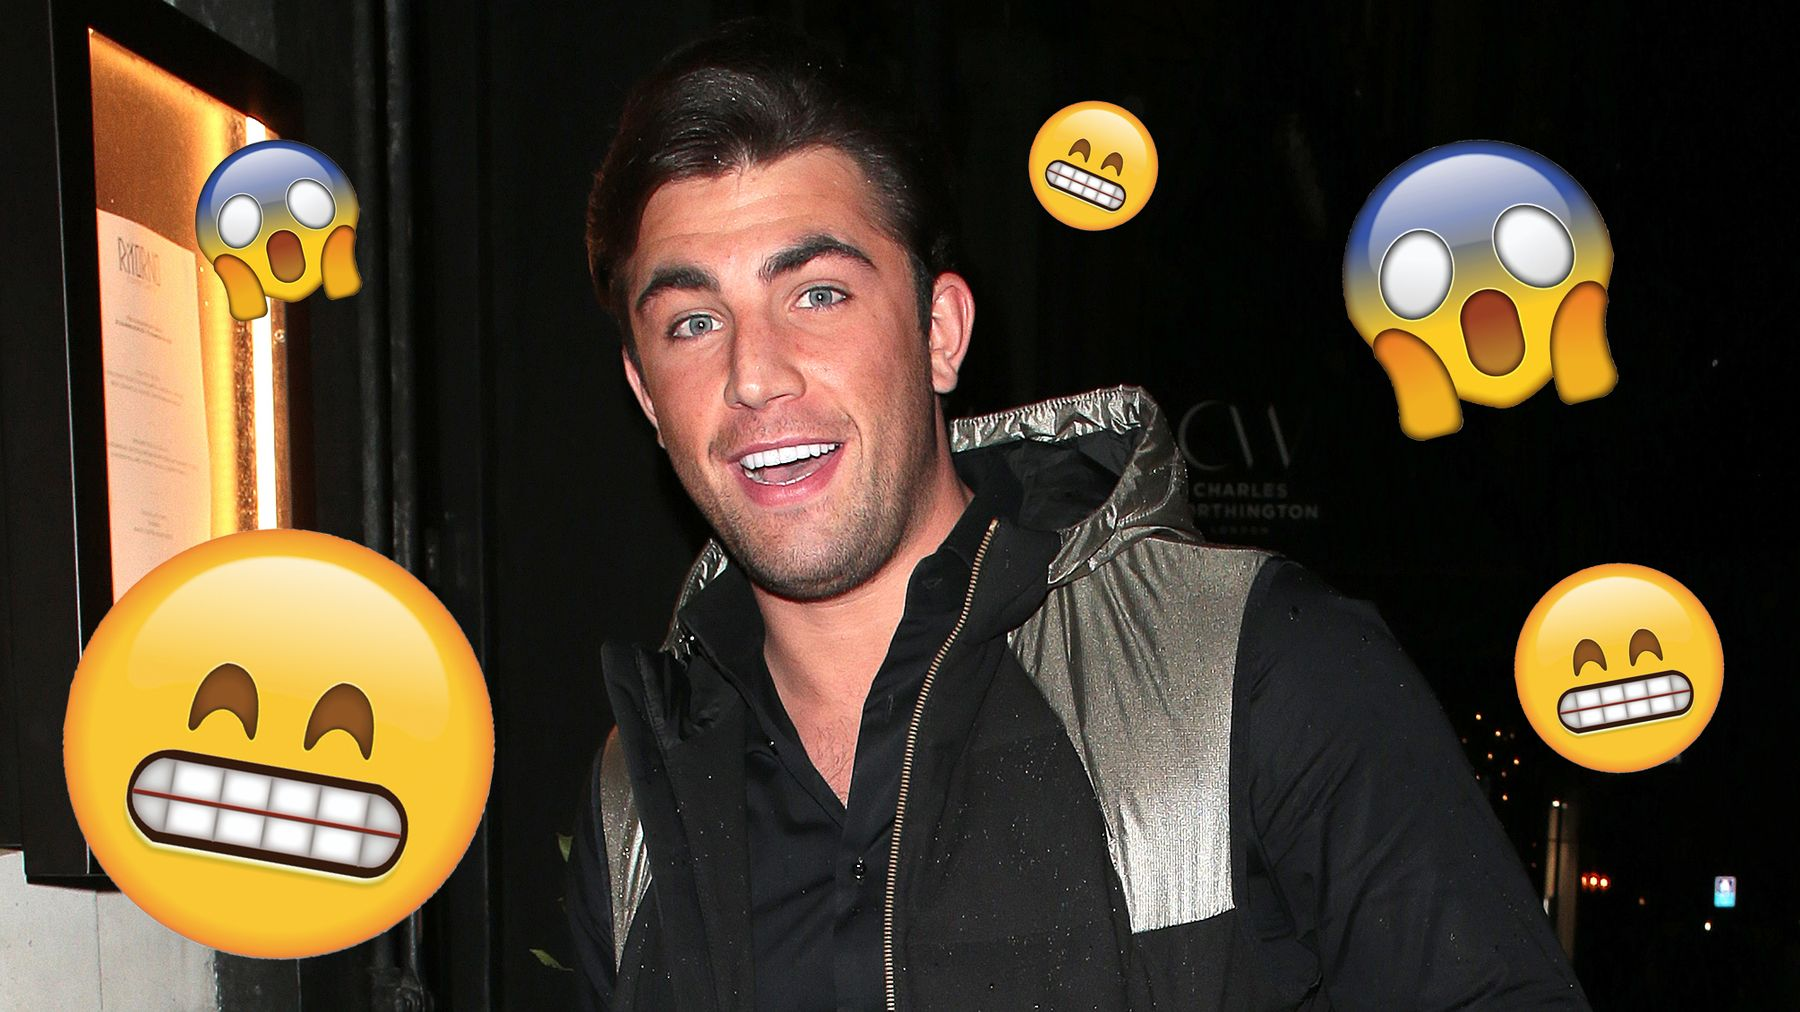 Fans ASTONISHED by Jack Fincham's super bright new teeth | Closer